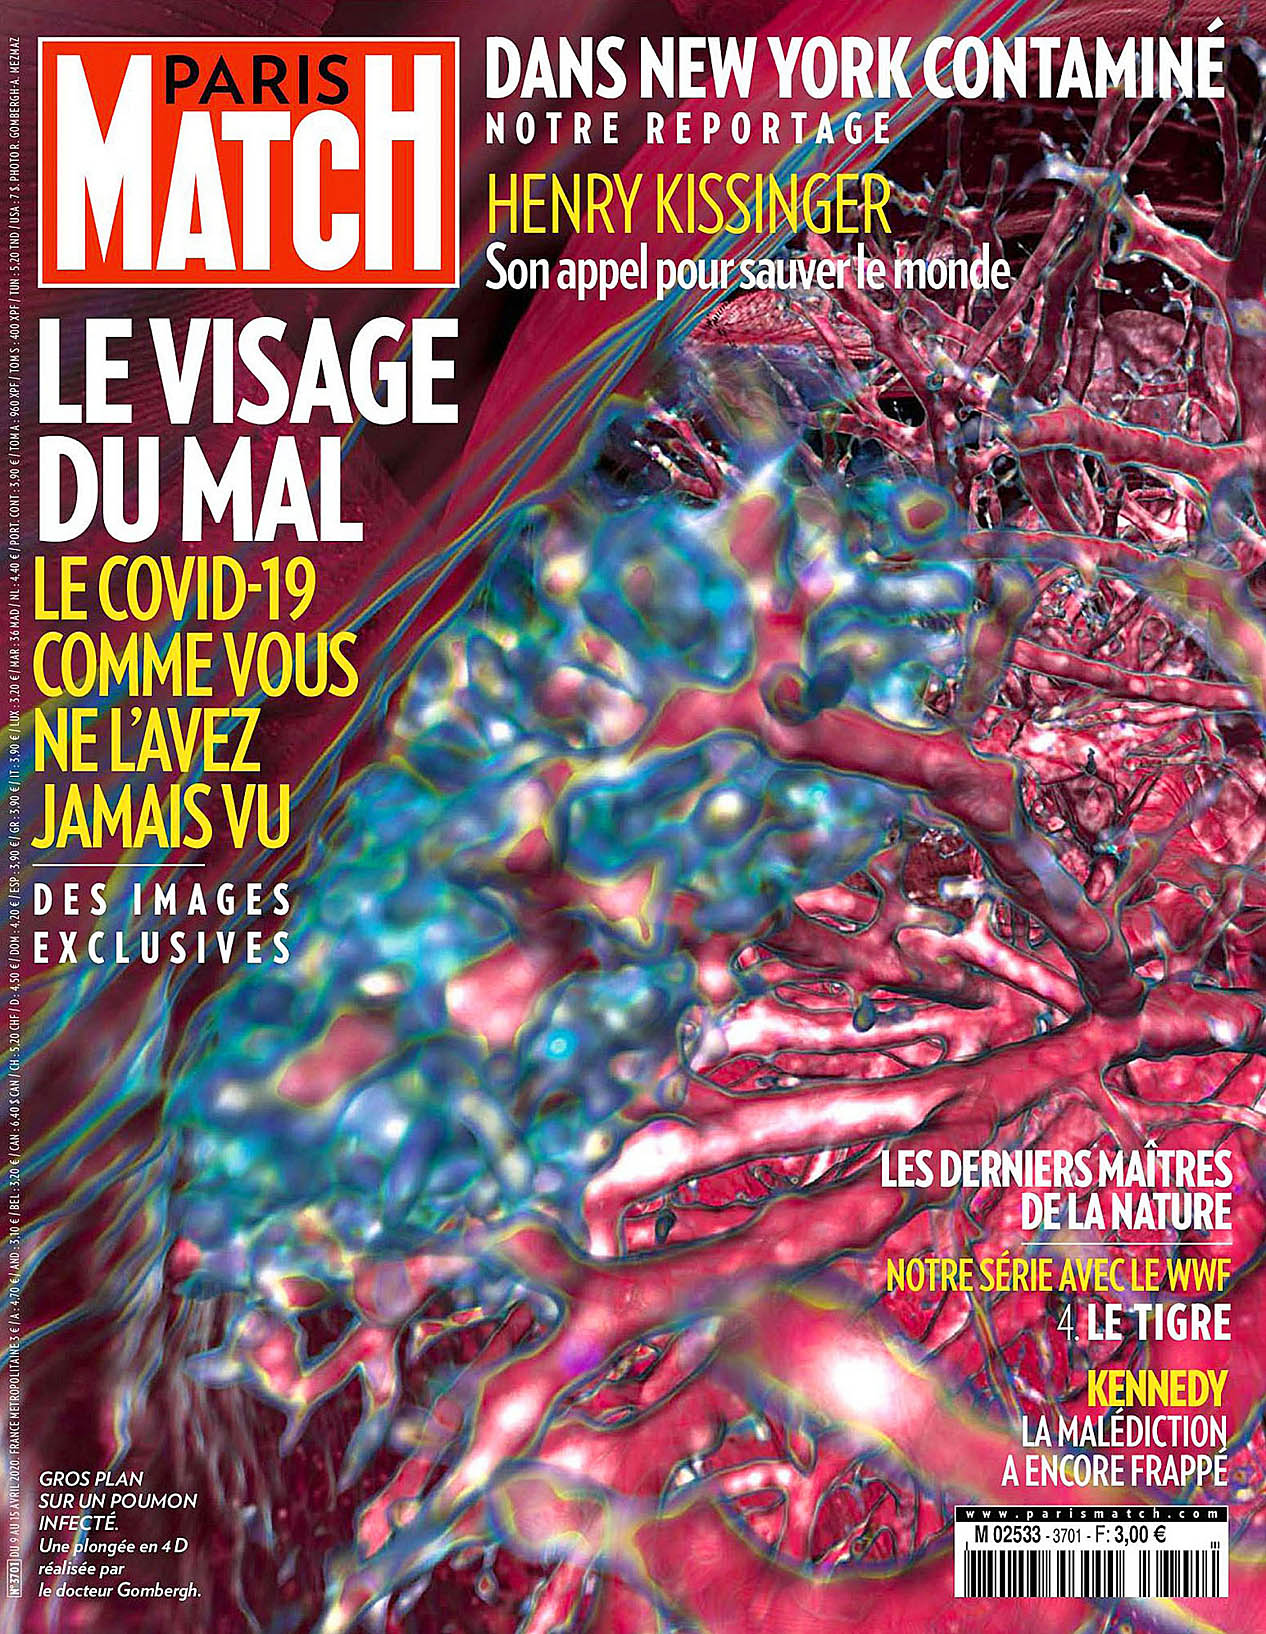 Paris Match 200409.jpg